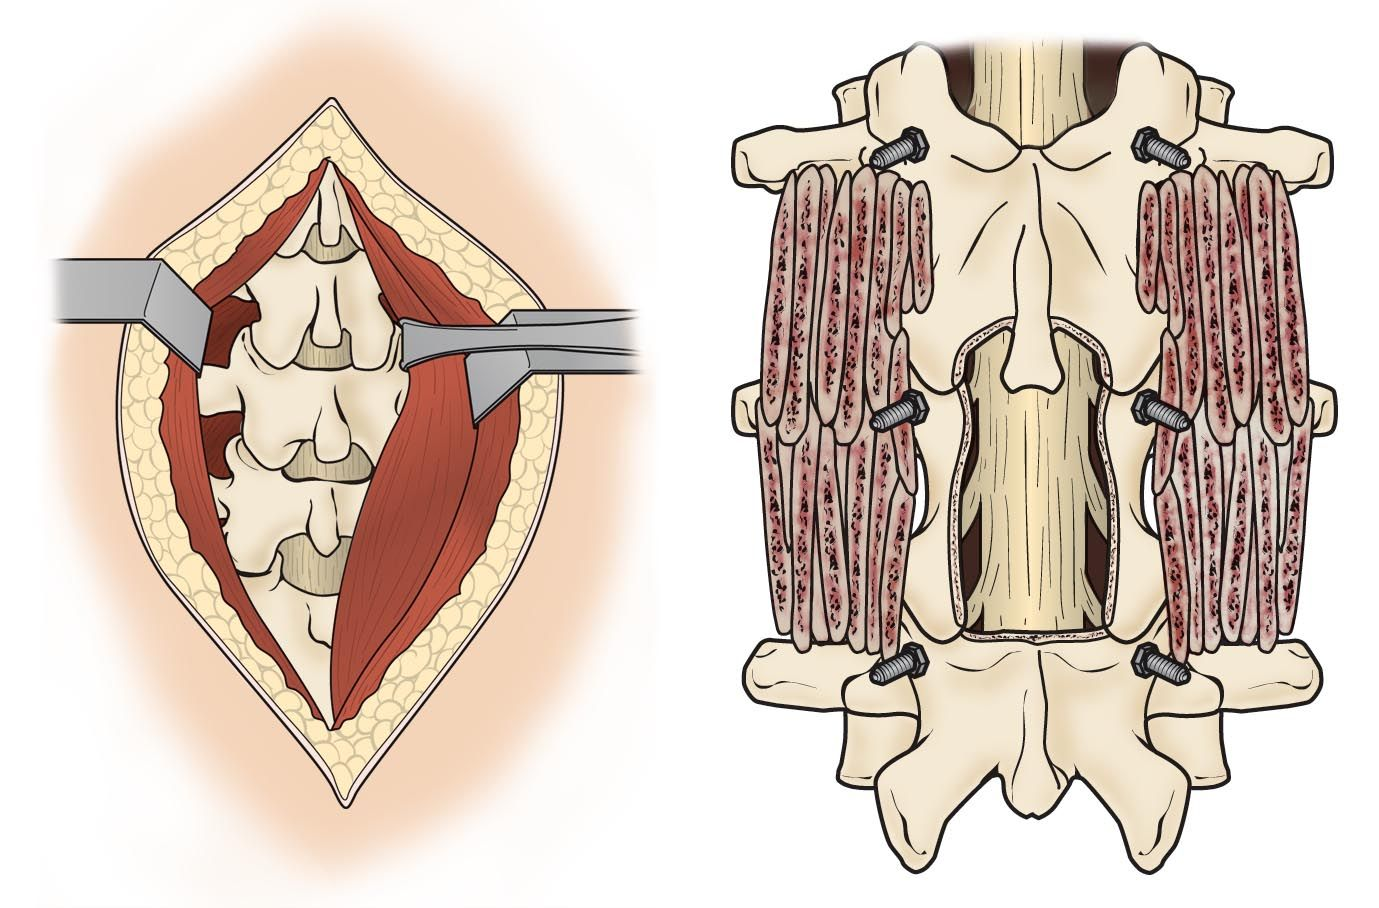 Spine decompression and bone graft